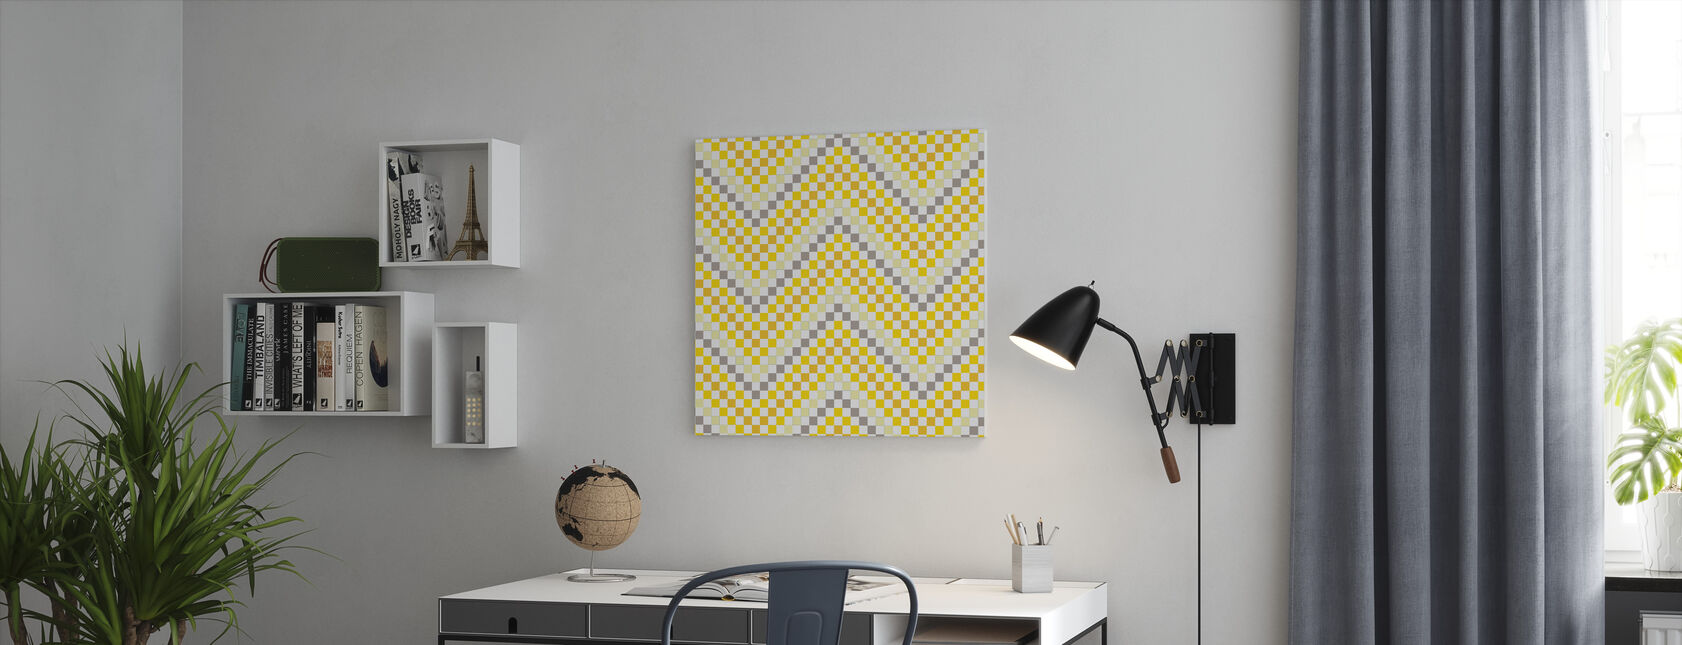 Going Geometric 4 - Canvas print - Office